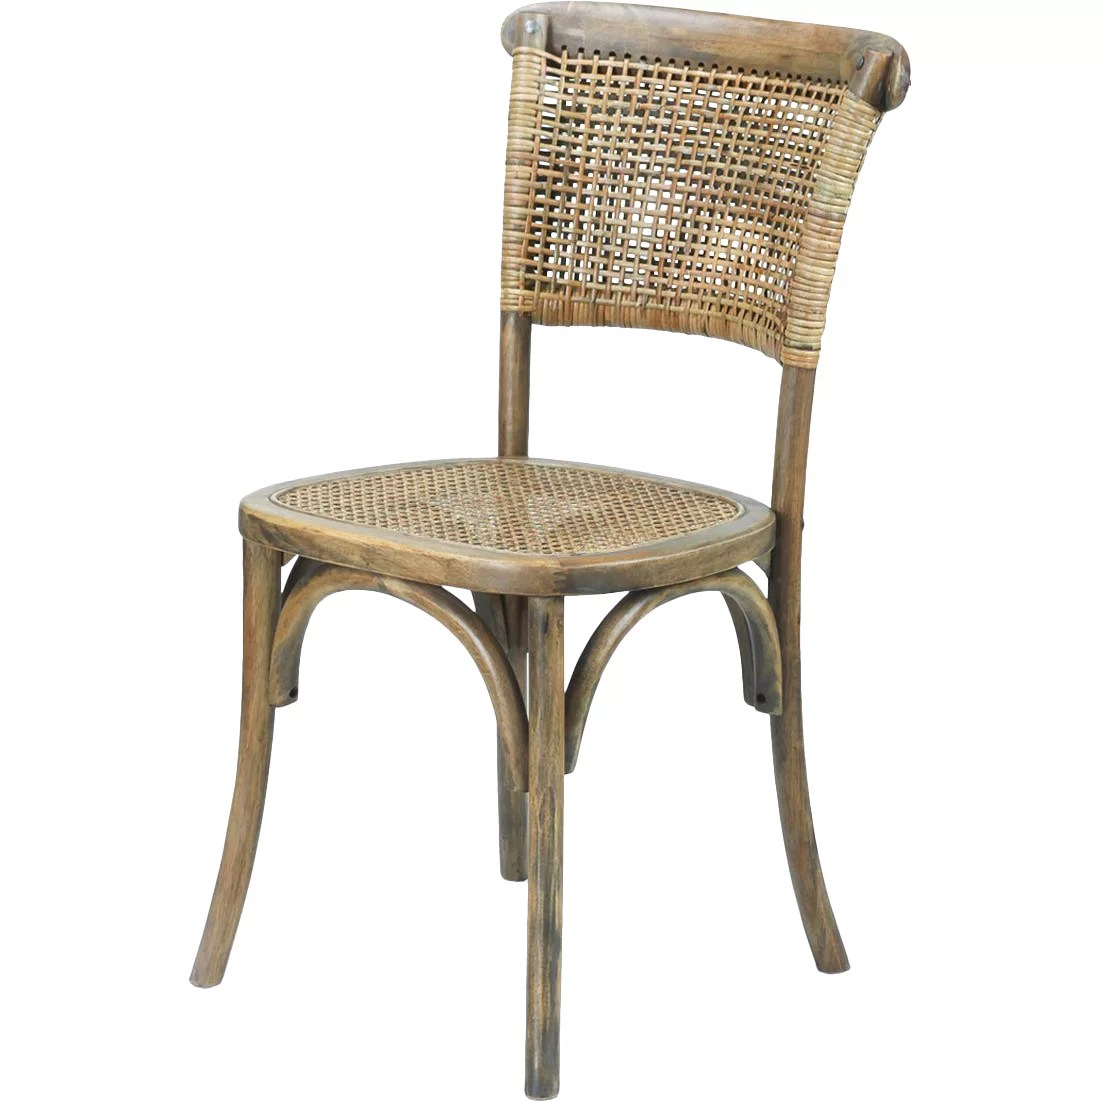 Cane Dining Chairs Adecotrading Dining Cane Side Chair And Reviews Wayfair